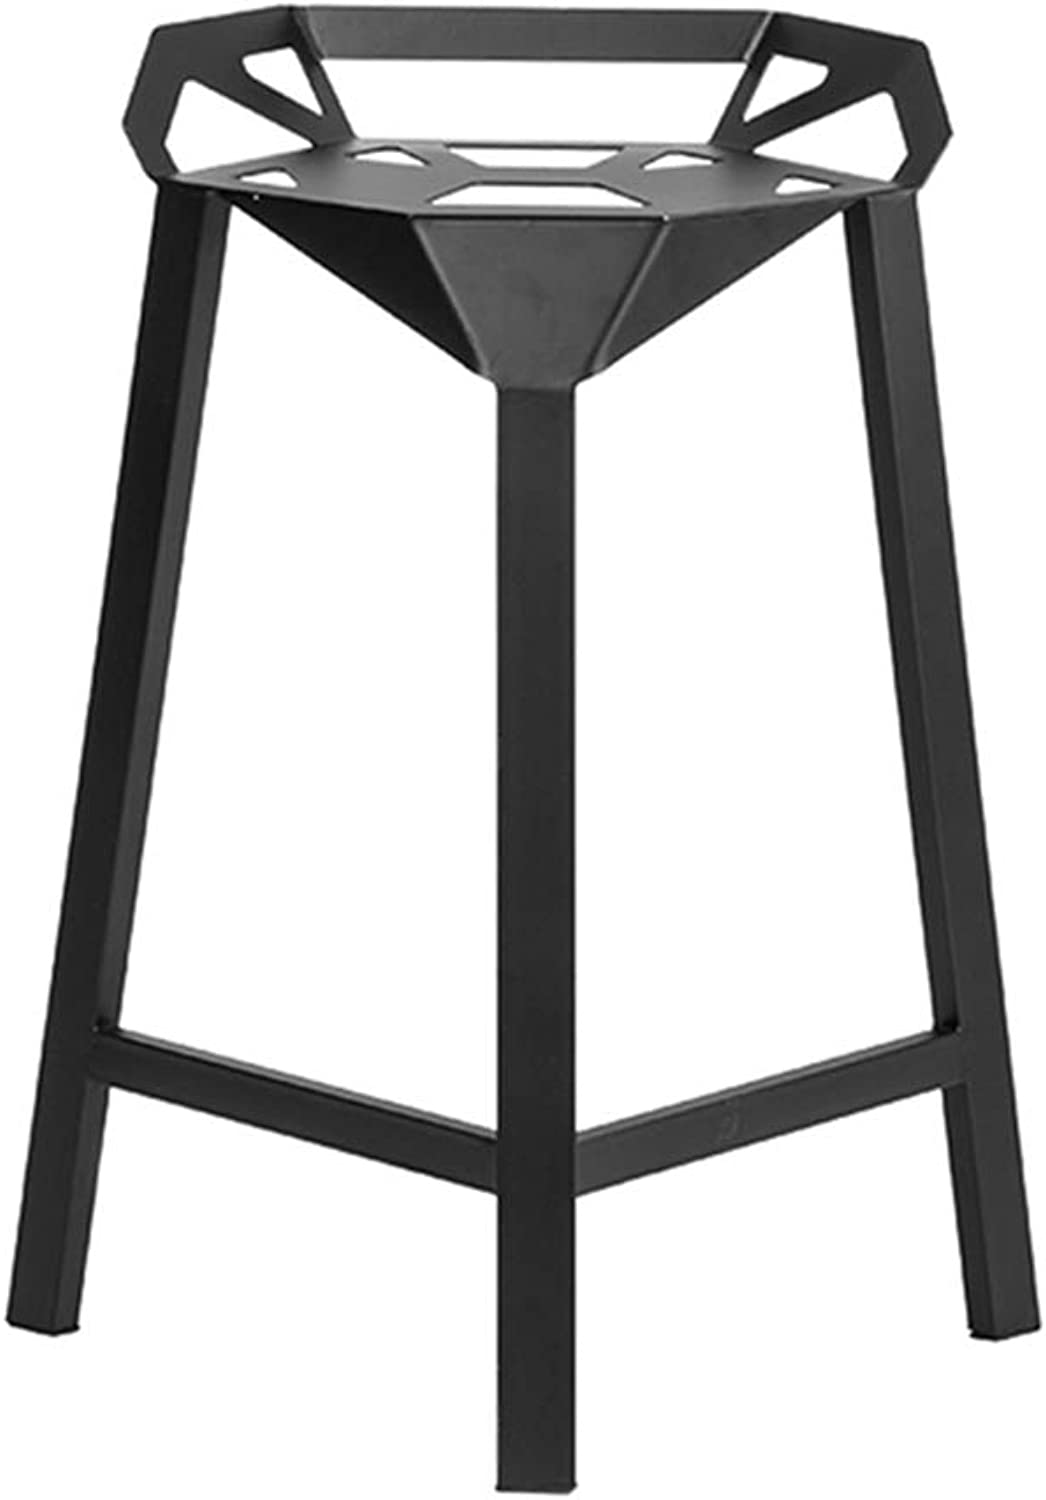 Barstools Dining Chair Metal Industrial Style Kitchen Pub Bar Stool, Iron Barstools High Stools Kitchen   Pub   Café Bar Stool with Footrest Stool Max. Load 440lb